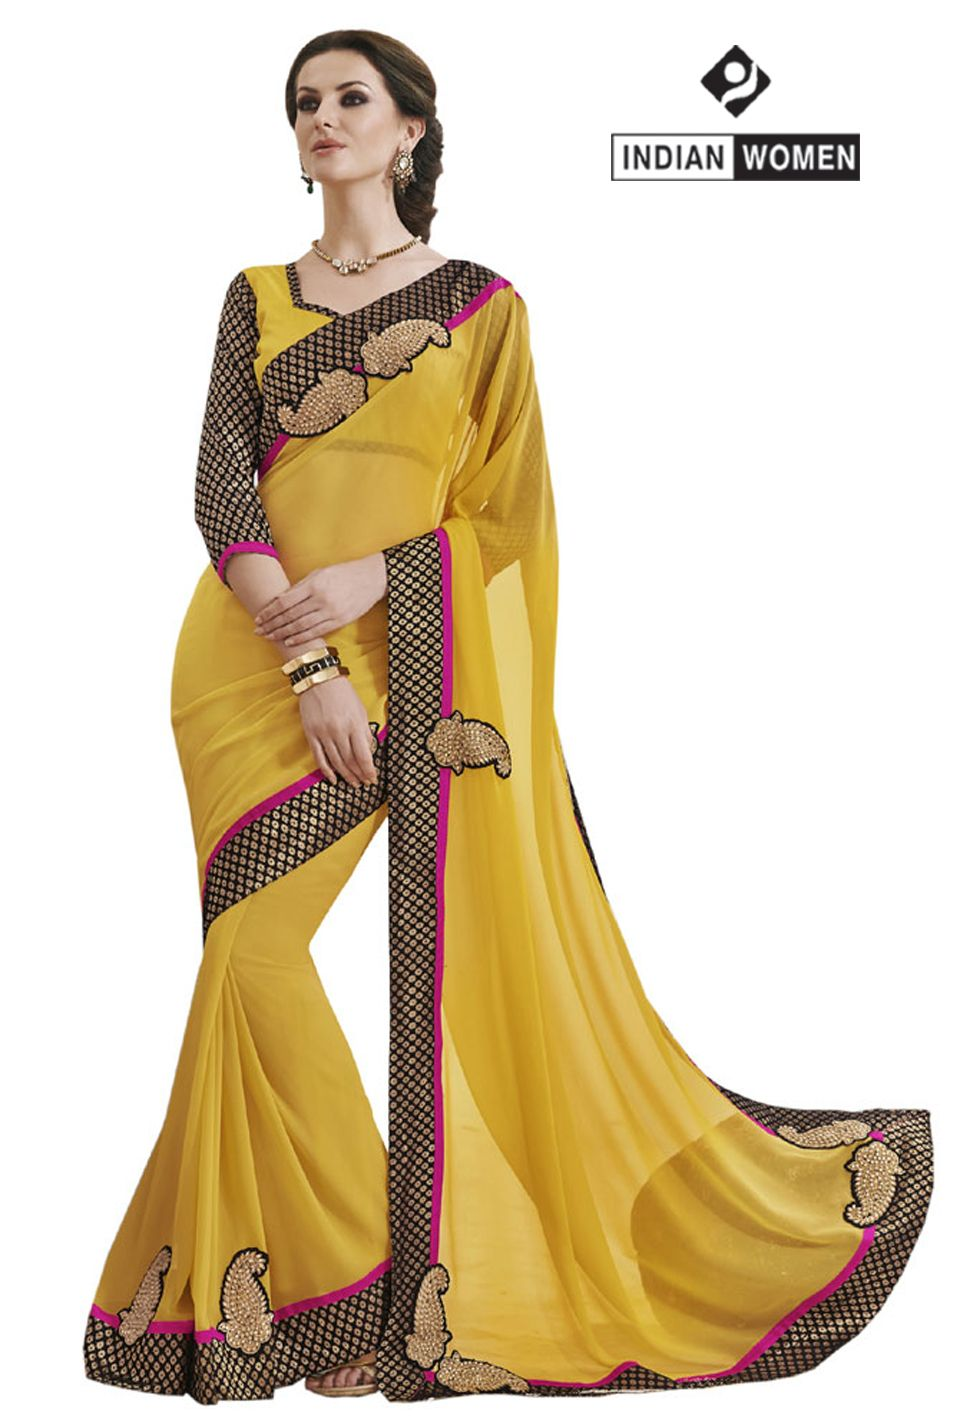 #Dazzling Yellow Saree !!  #Yellow Faux Georgette Saree designed with Resham Embroidery. As shown Yellow Brocade Blouse fabric is available.  INR : 1375 Only  Shop now @ http://goo.gl/aSvqdE